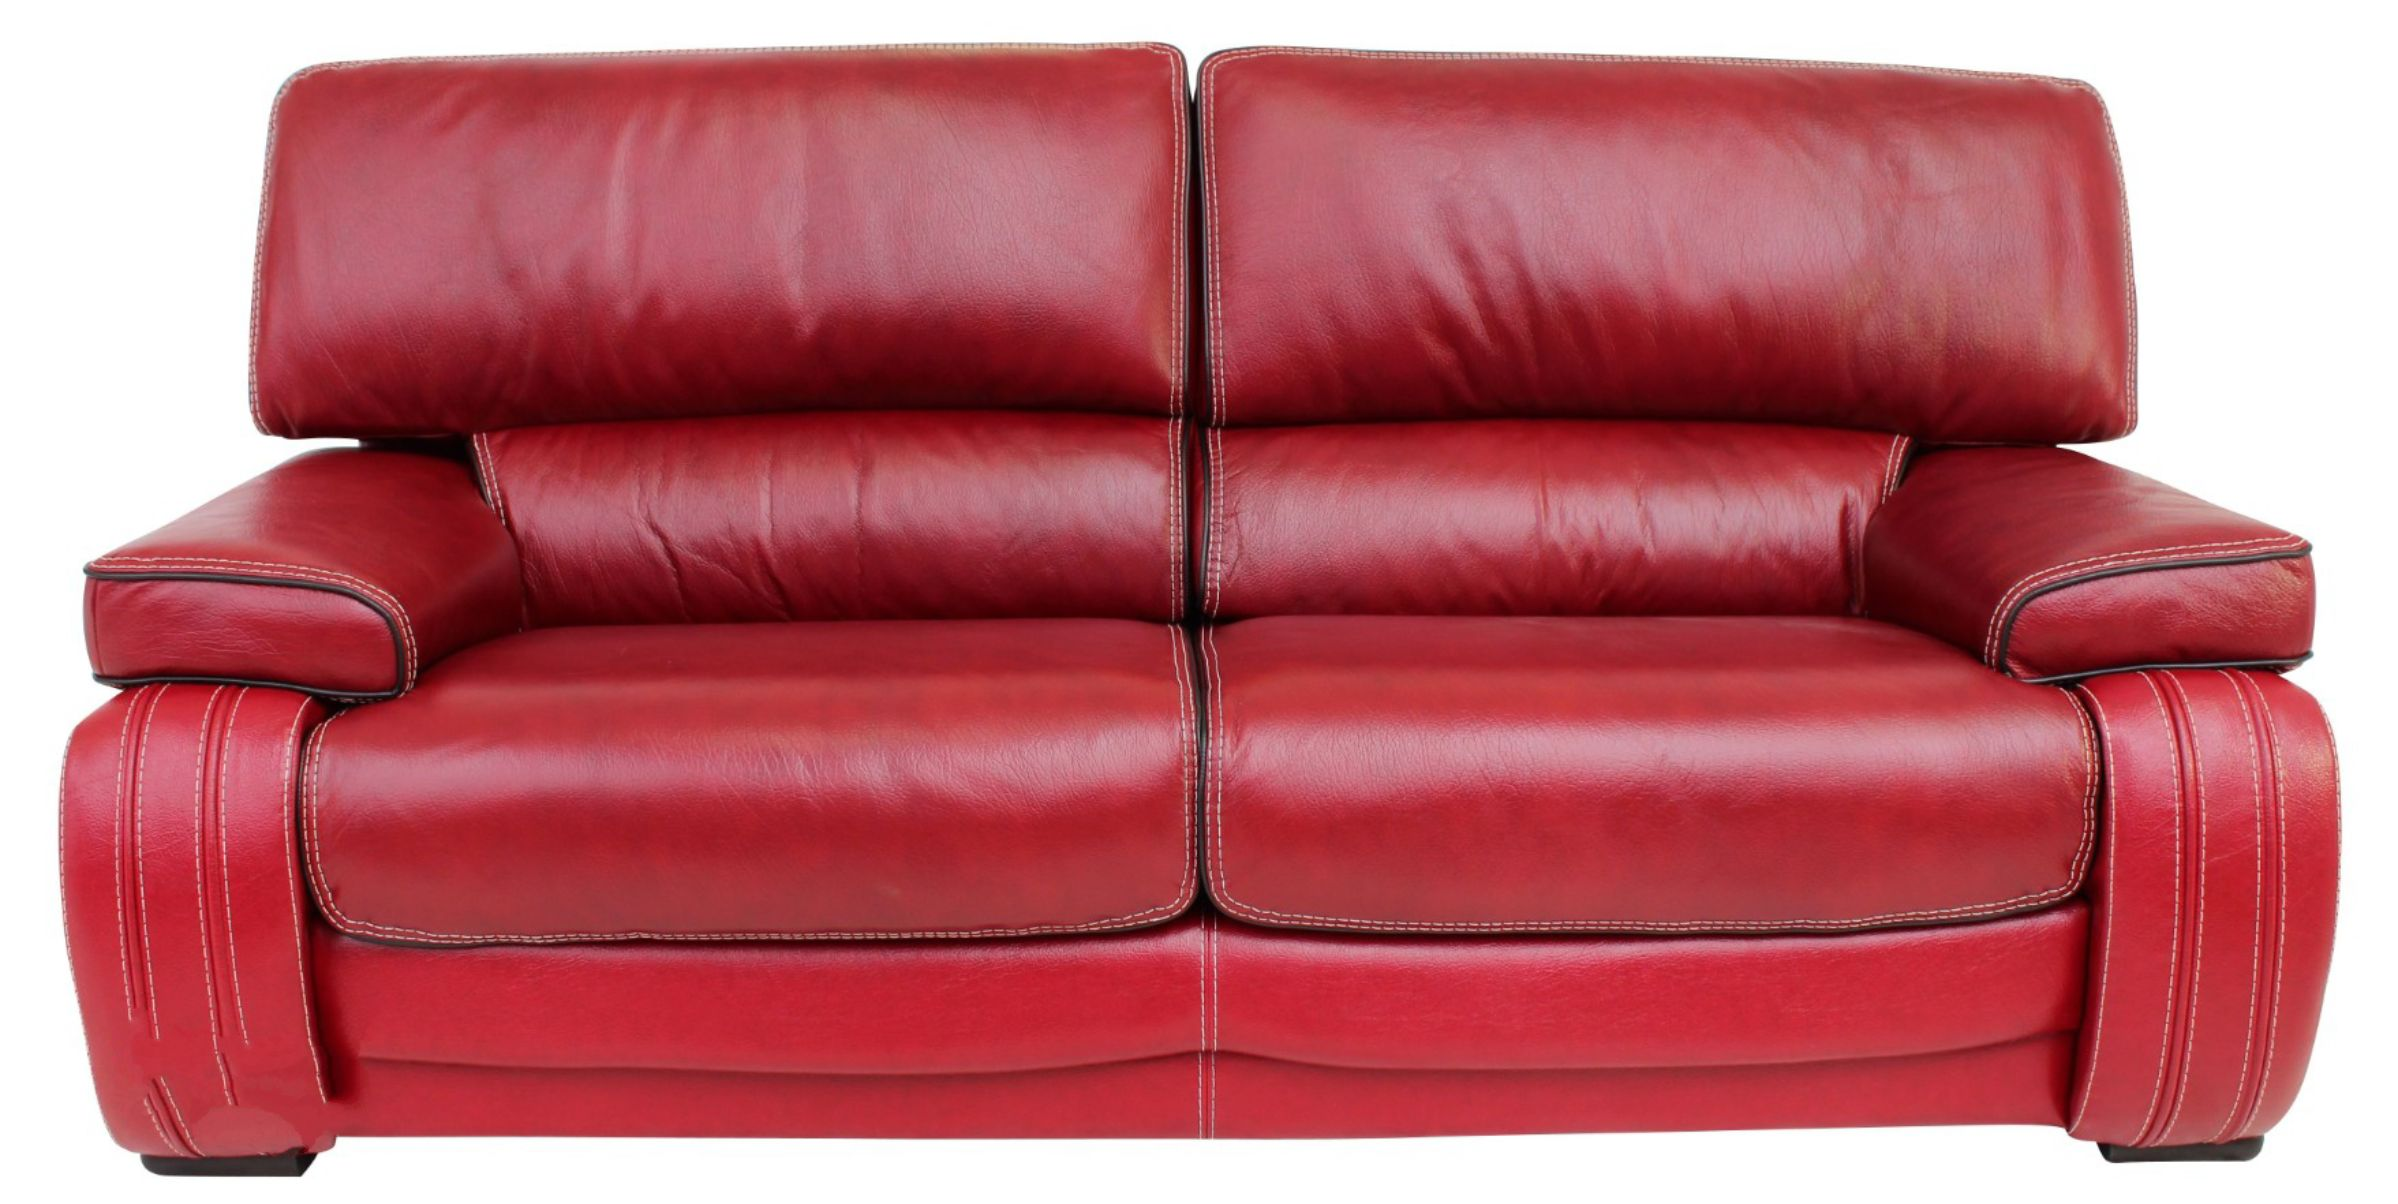 kentucky 3 seater genuine italian red leather sofa settee offer leather sofas fabric sofas. Black Bedroom Furniture Sets. Home Design Ideas